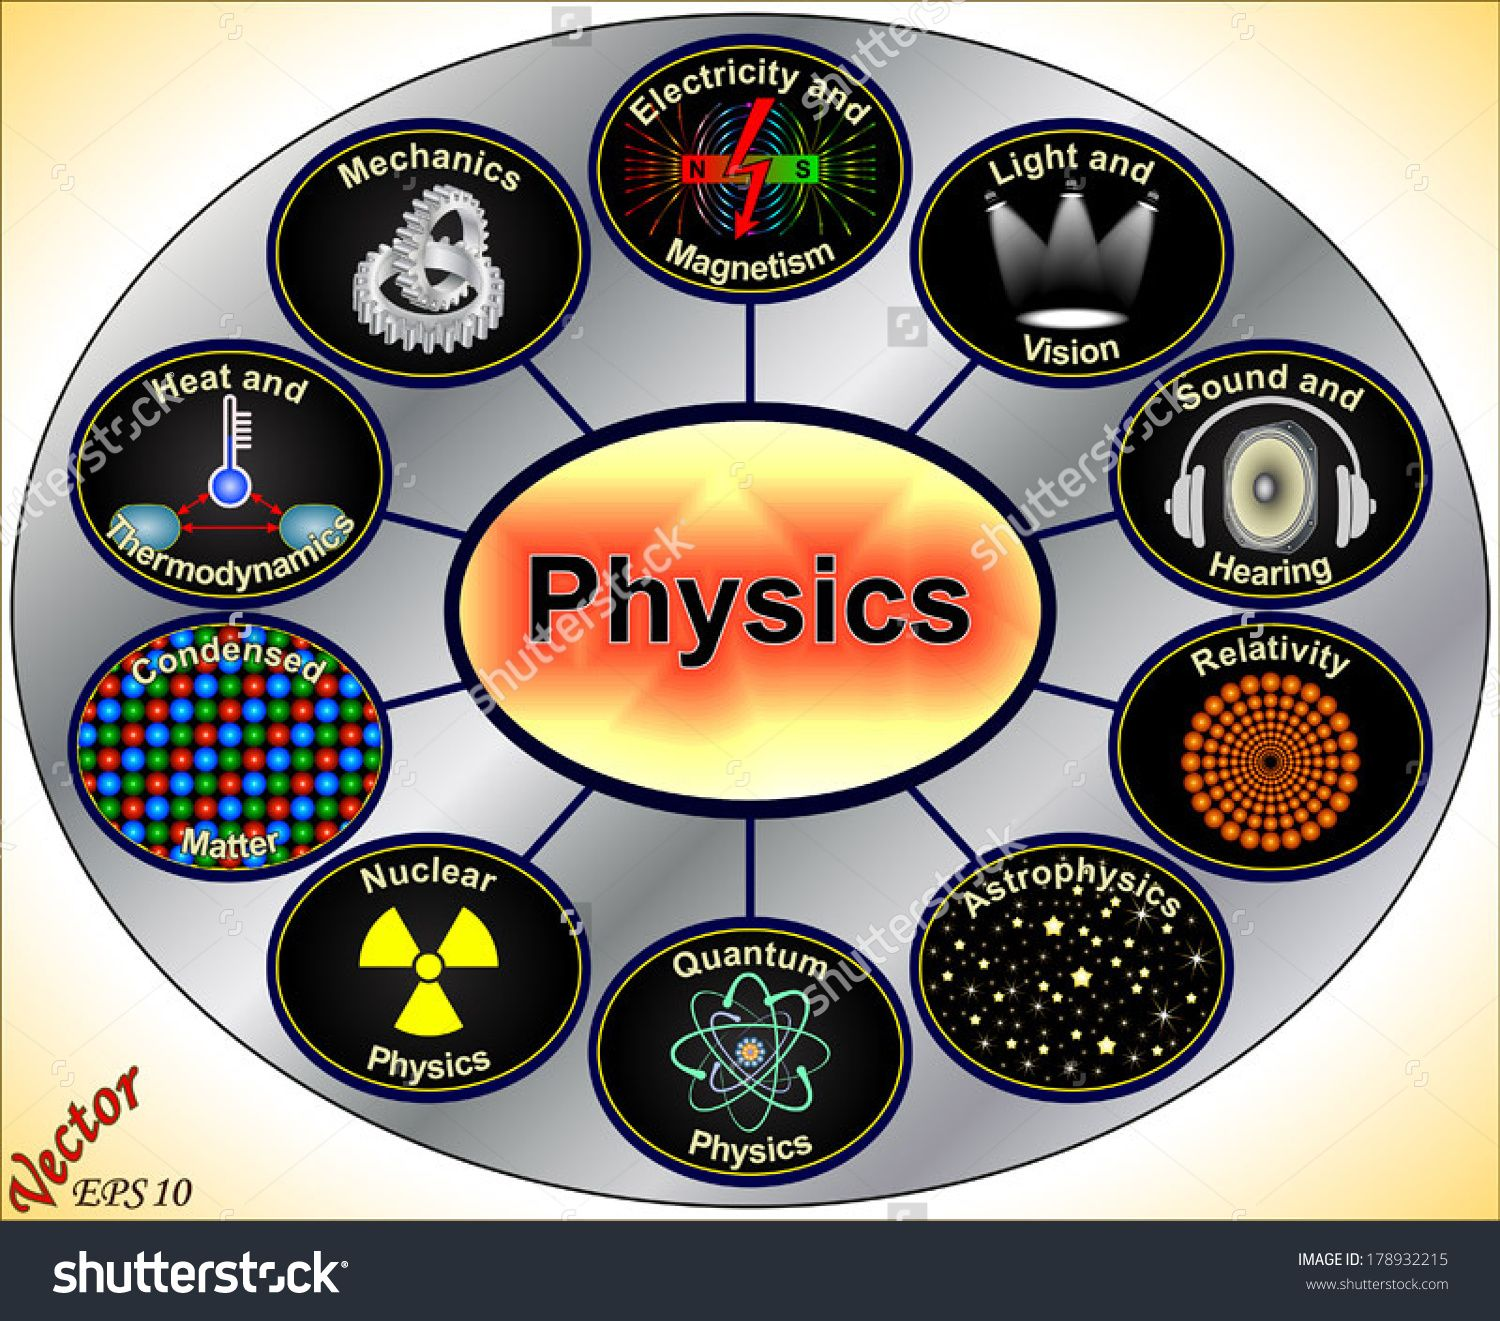 Image Result For Physics Clipart